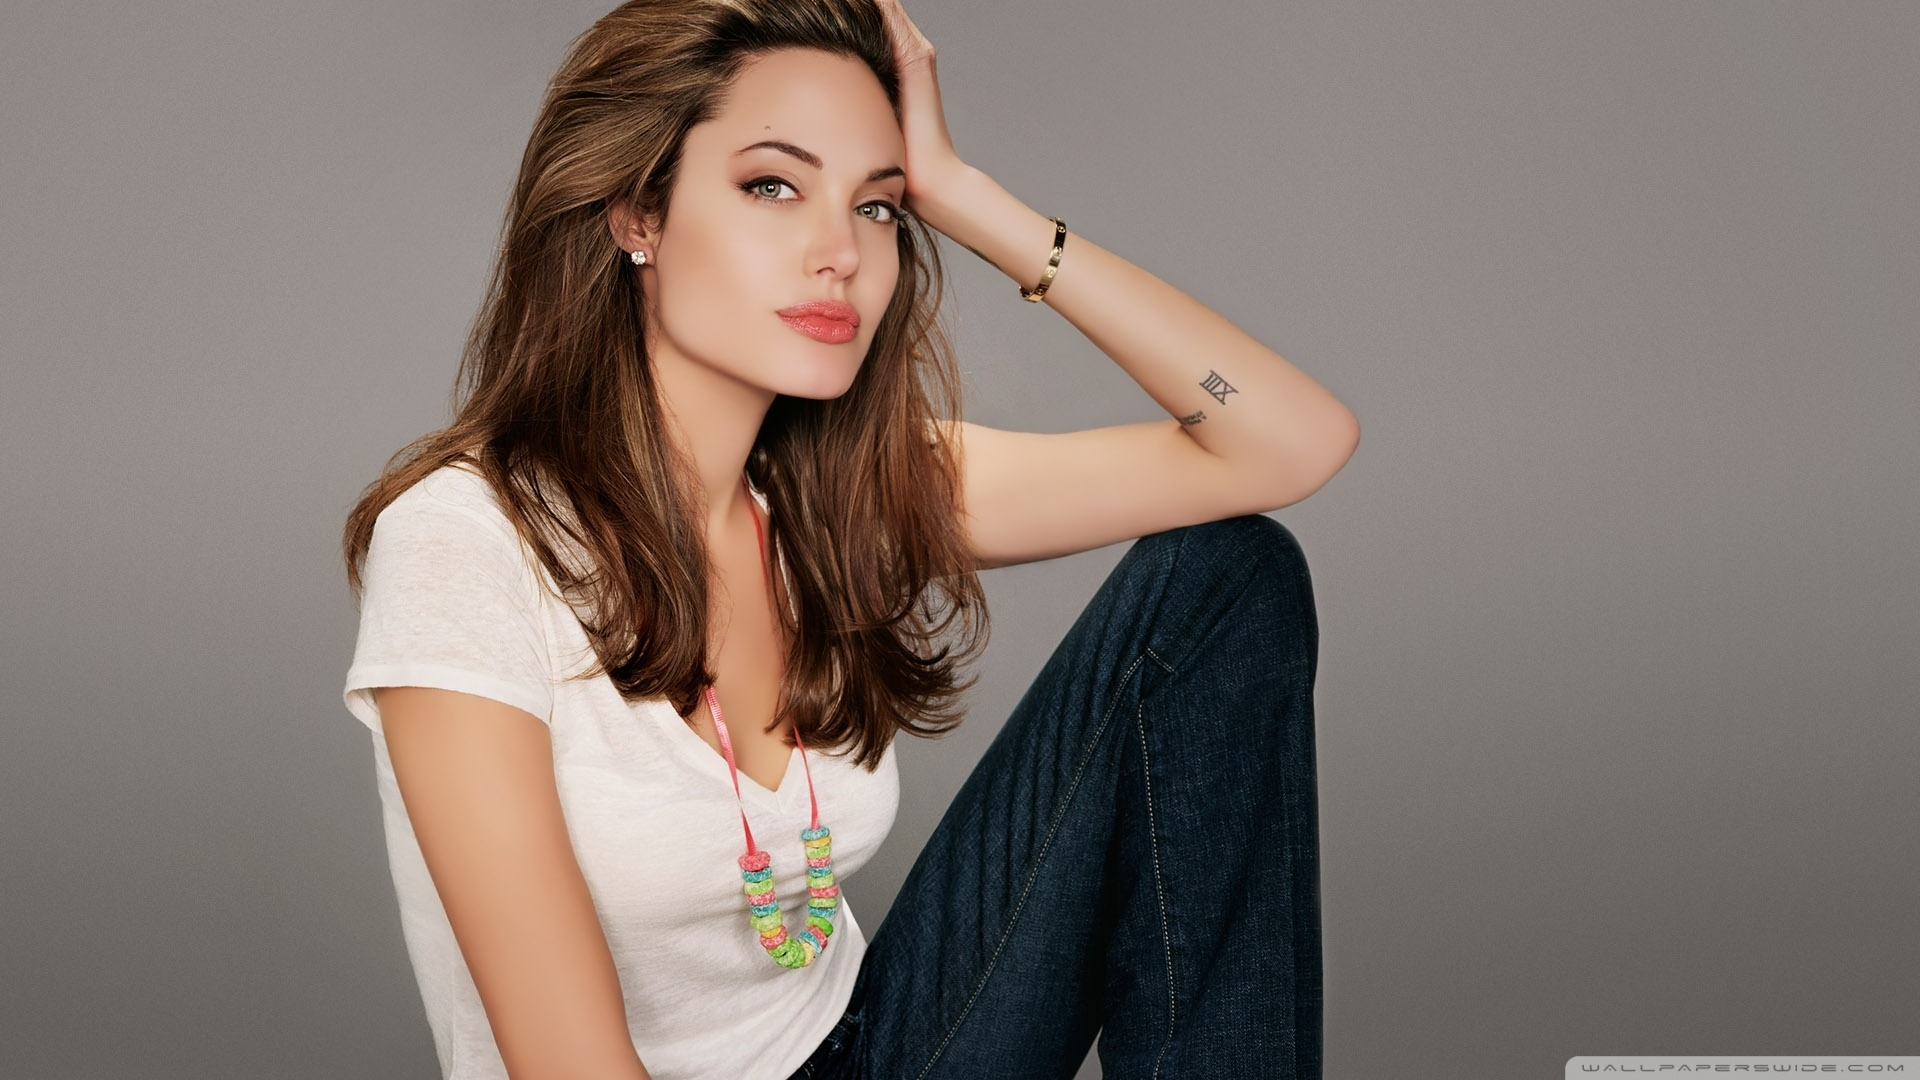 Angelina Jolie Beautiful Wallpaper 1920x1080 Angelina Jolie 1920x1080